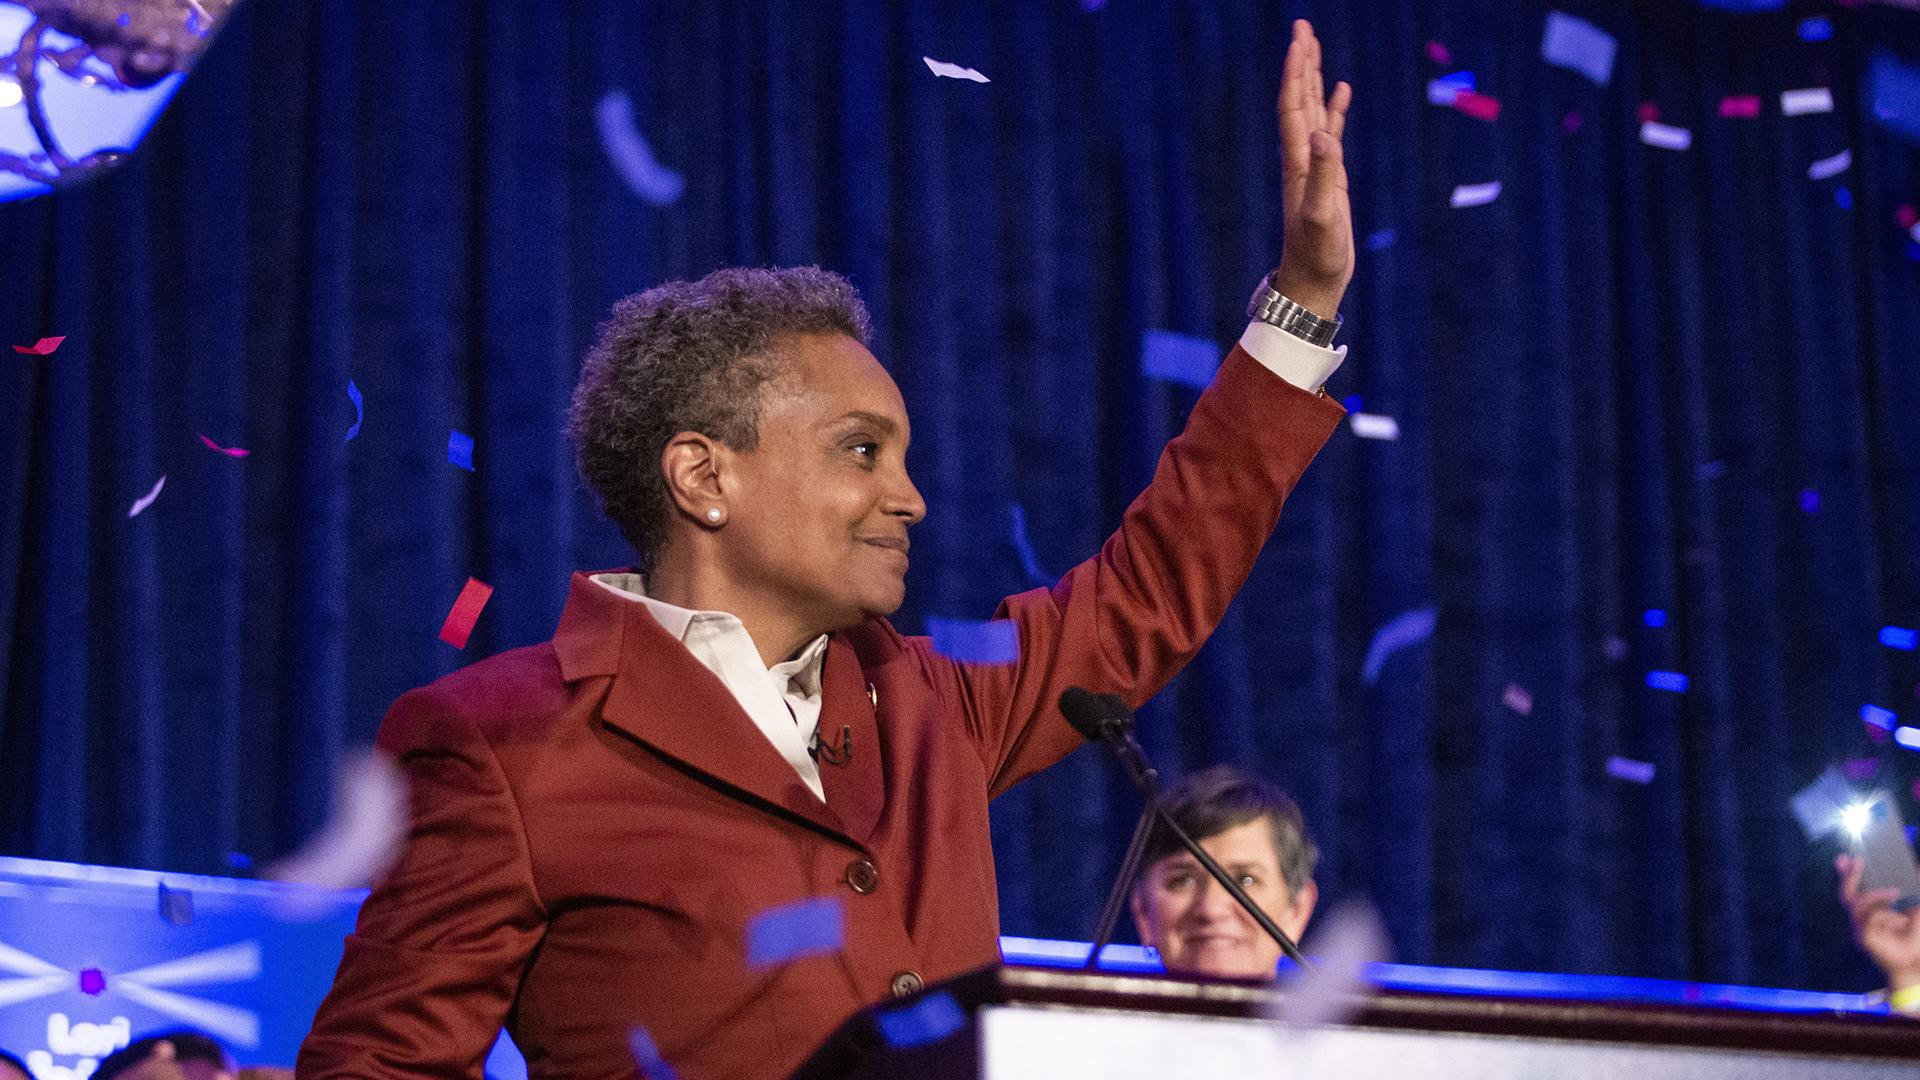 - JT events team supports election night for Chicago's first African American, female mayor – Lori Lightfoot.